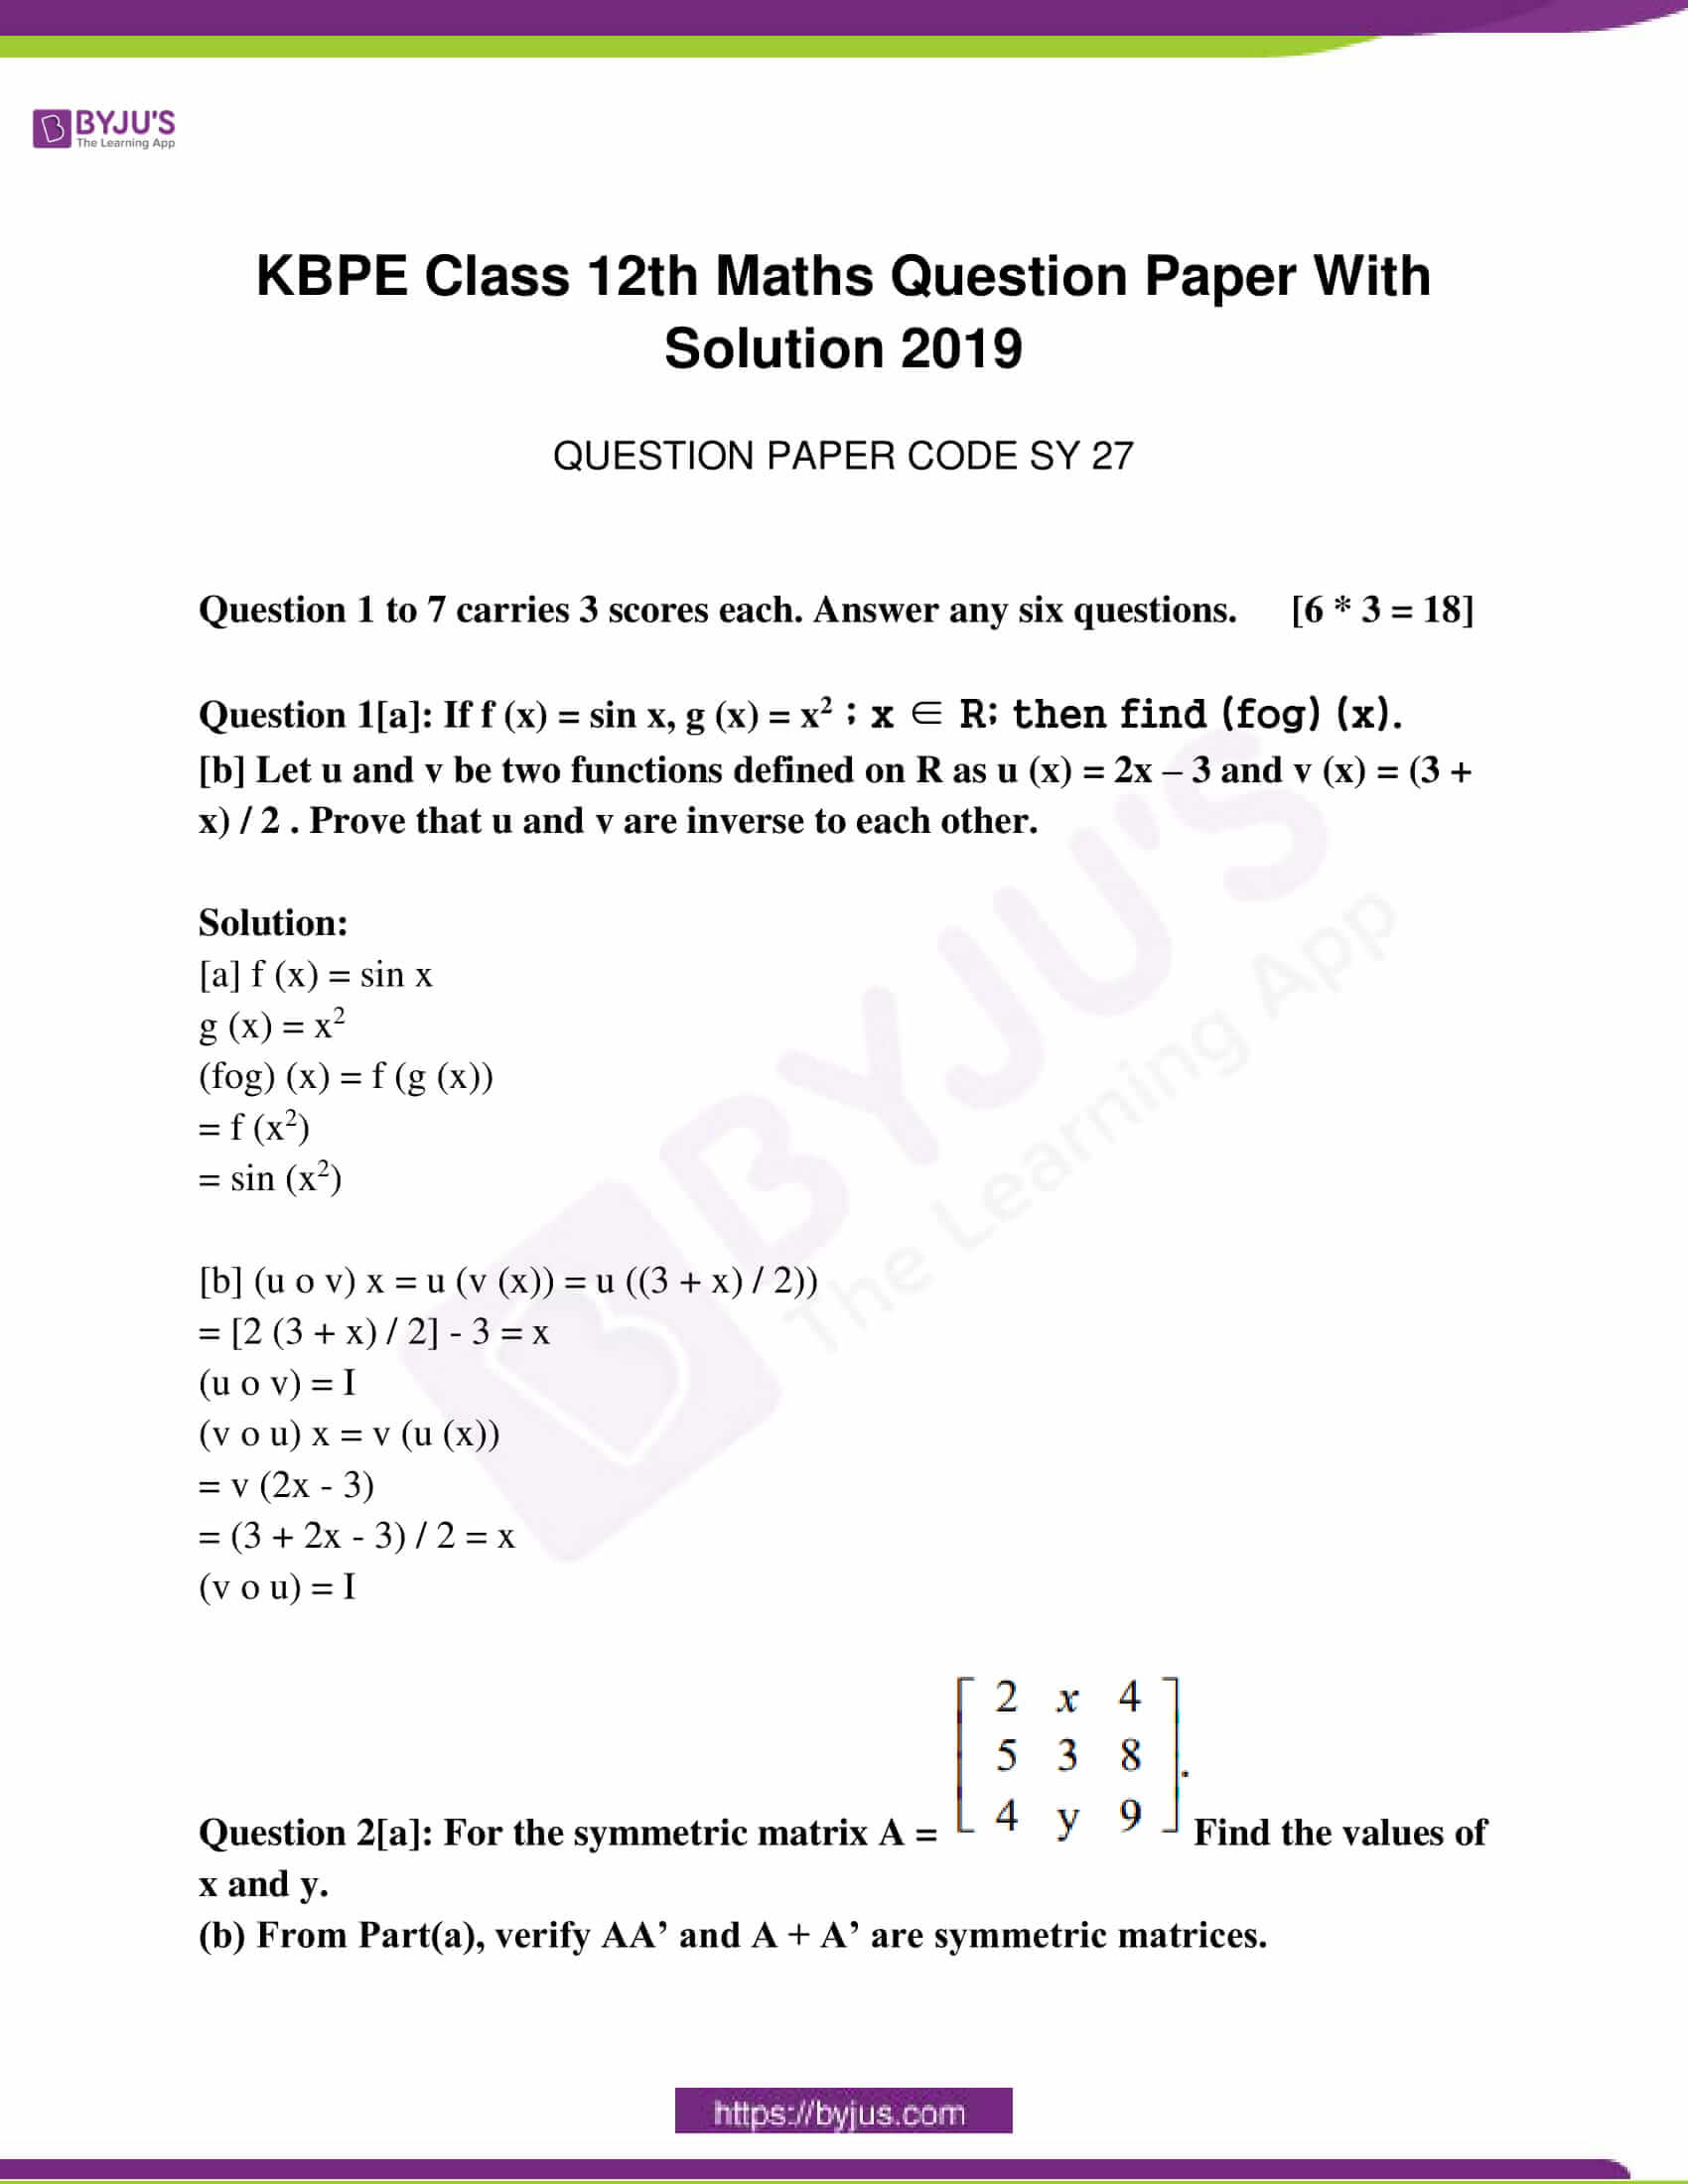 kerala class 12 examination question paper solutions march 2019 01